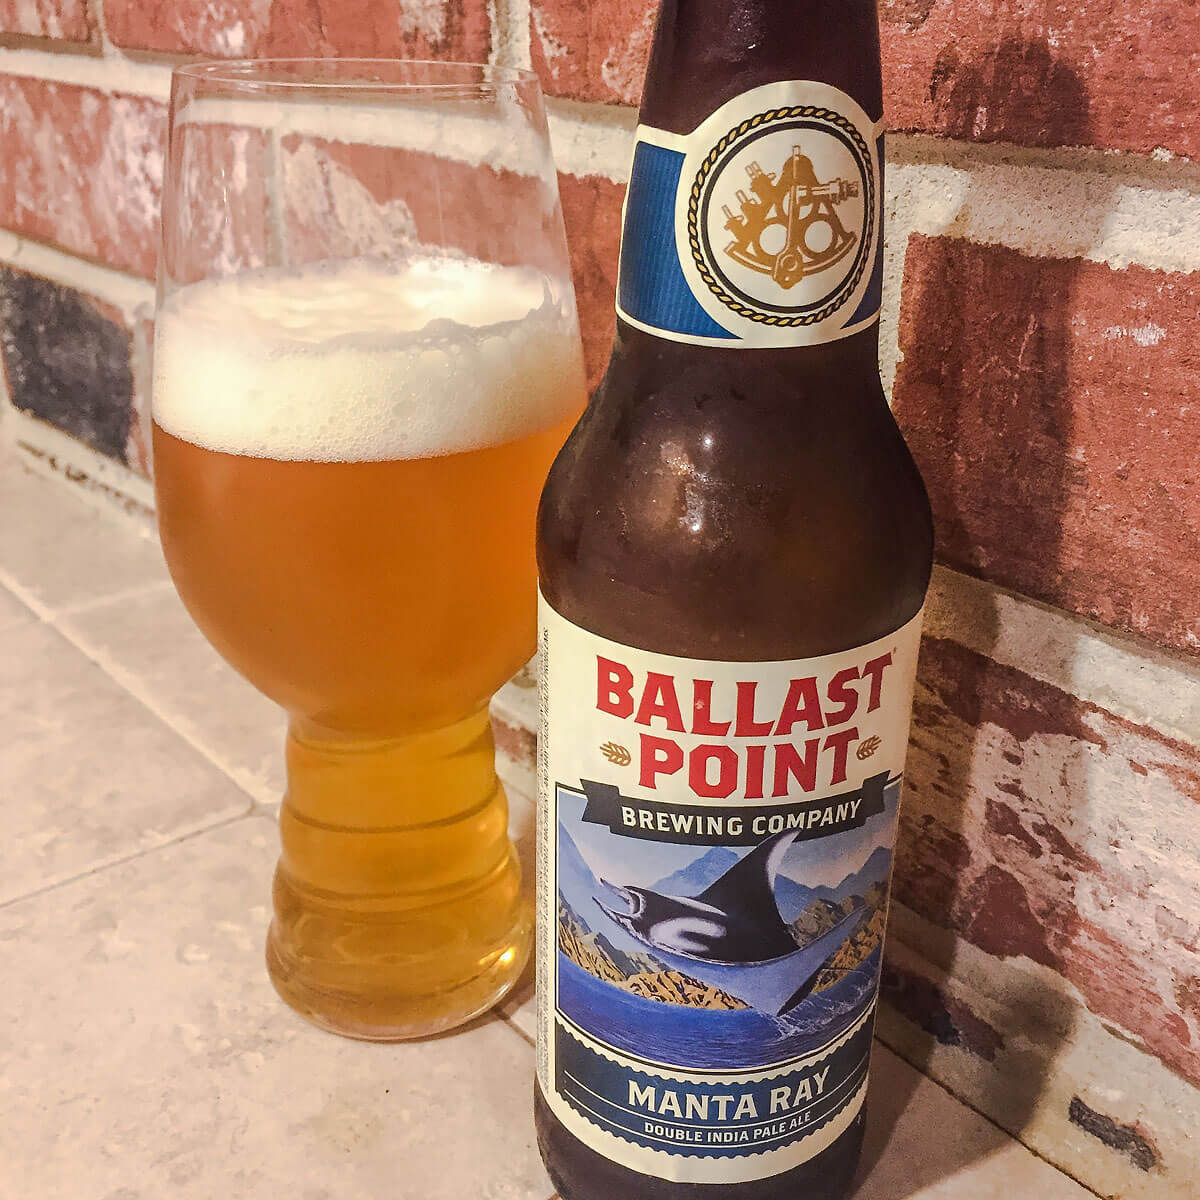 Manta Ray, an American Double IPA by Ballast Point Brewing Company